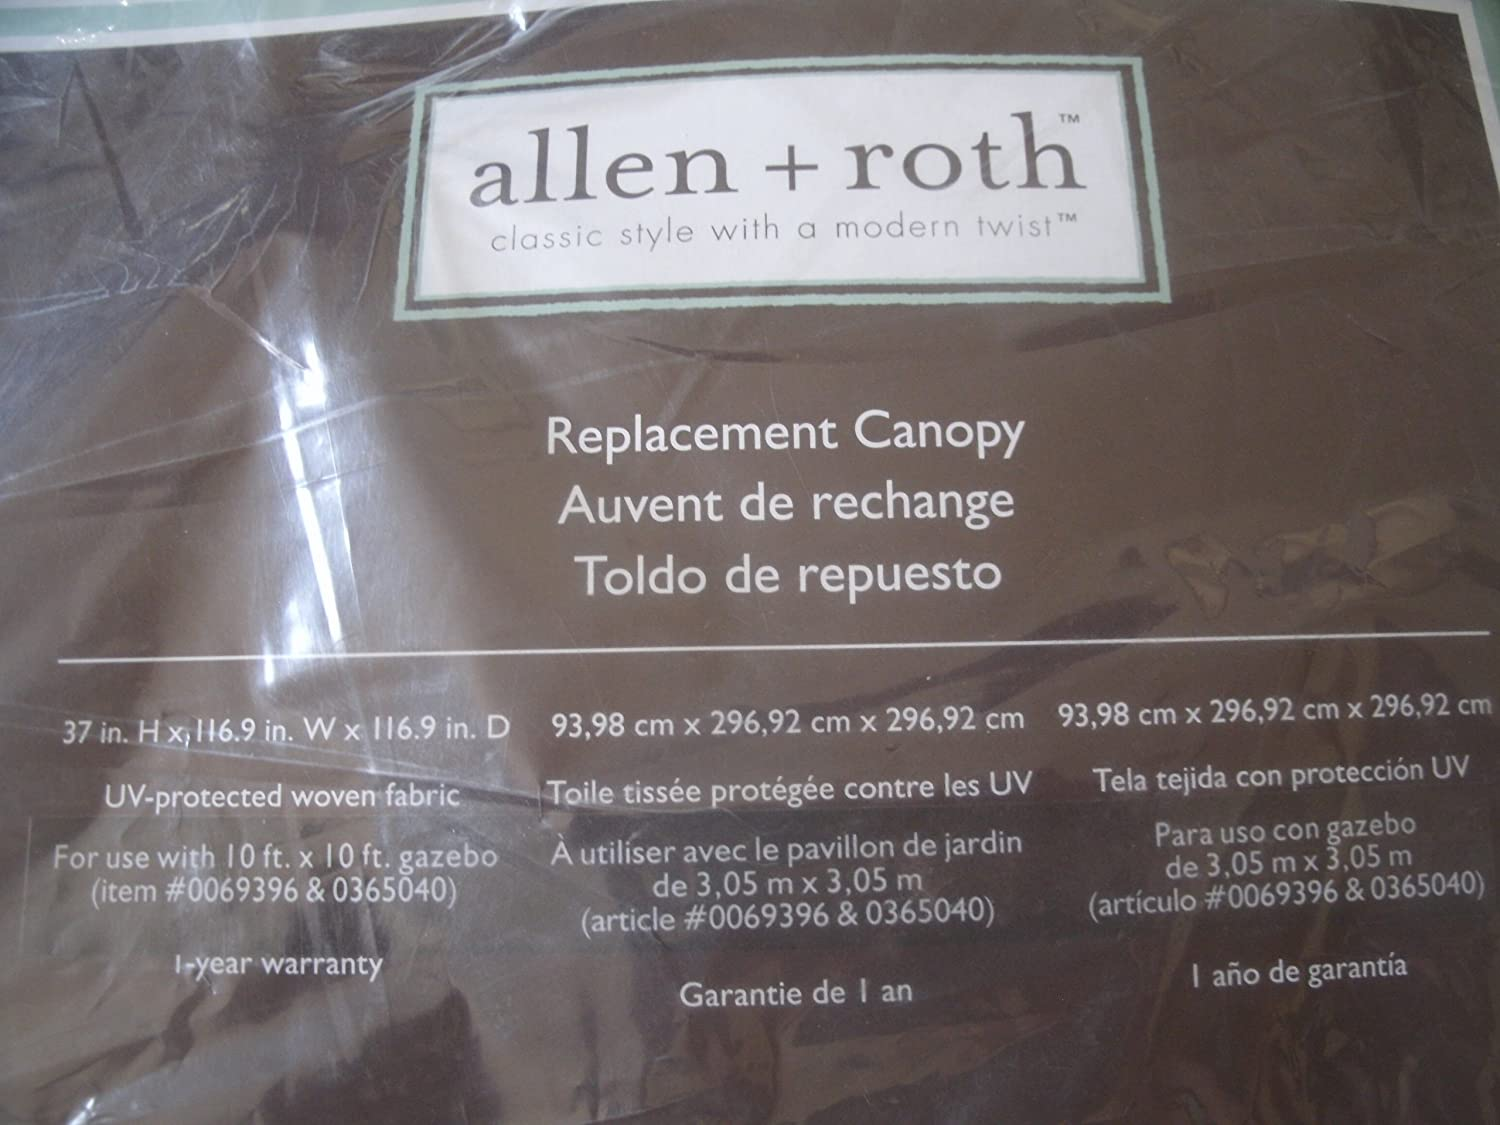 Amazon.com  Allen+Roth Replacement Canopy Item# 64222 Model# GF-12S039BT0 UPC# 749241409387  Outdoor And Patio Products  Garden u0026 Outdoor & Amazon.com : Allen+Roth Replacement Canopy Item# 64222 Model# GF ...